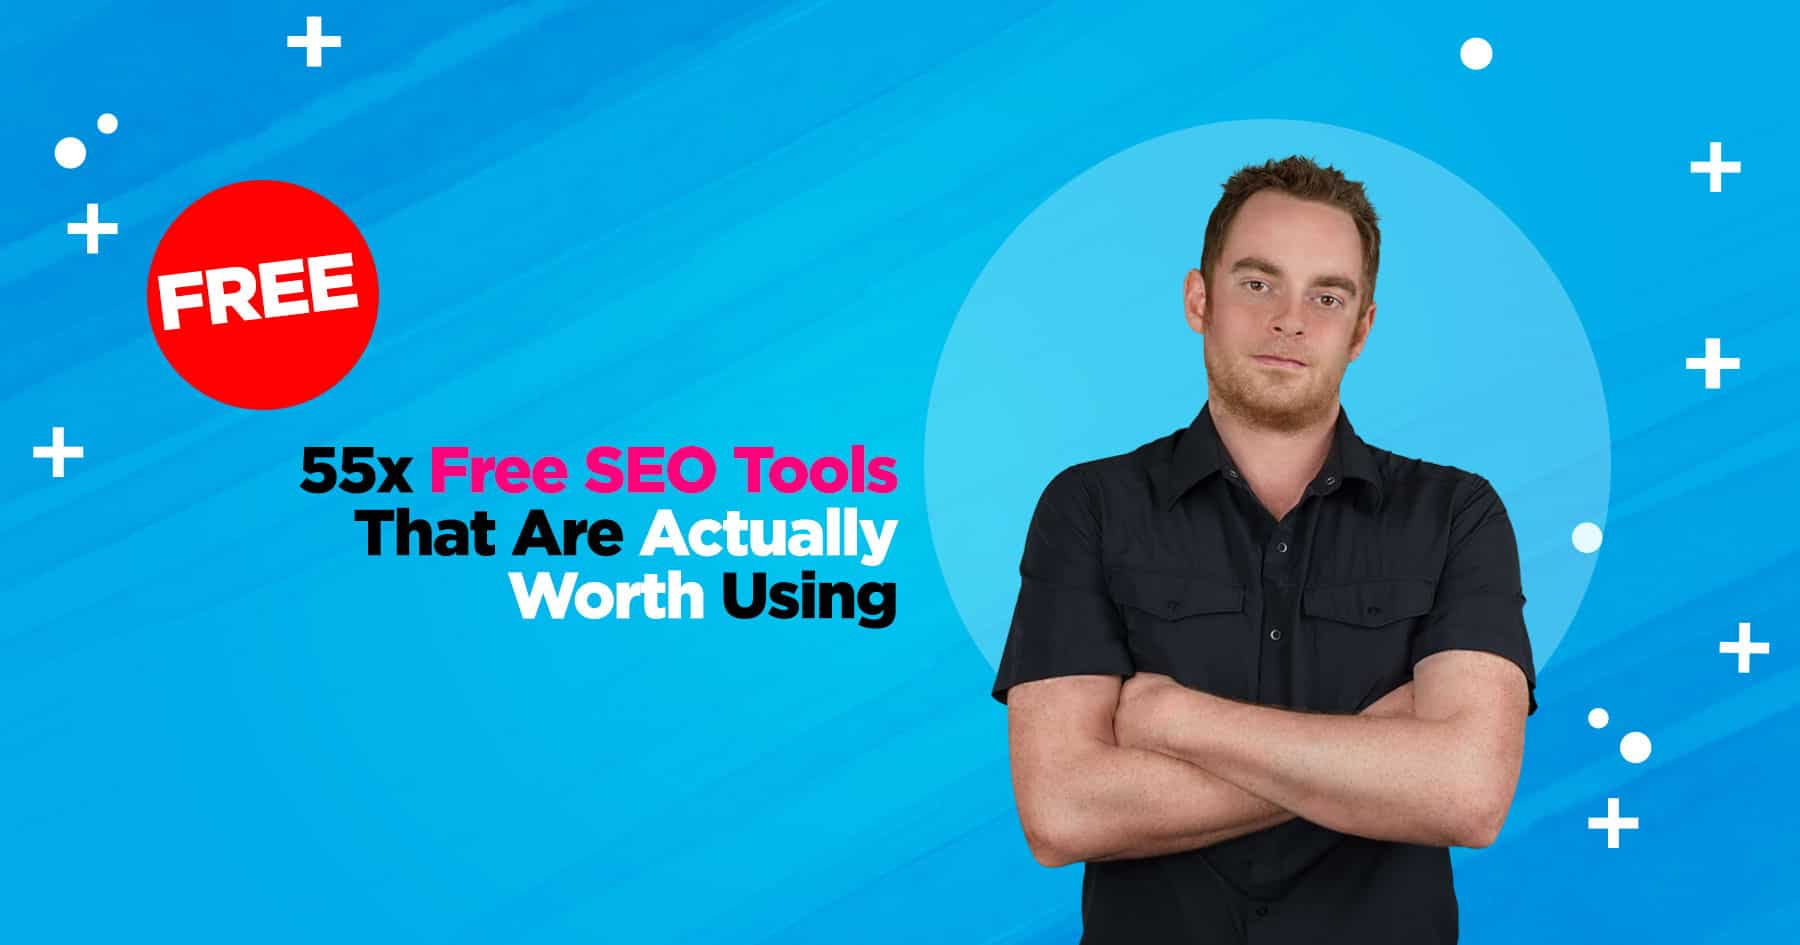 Free SEO Tools That Are Actually Worth Using